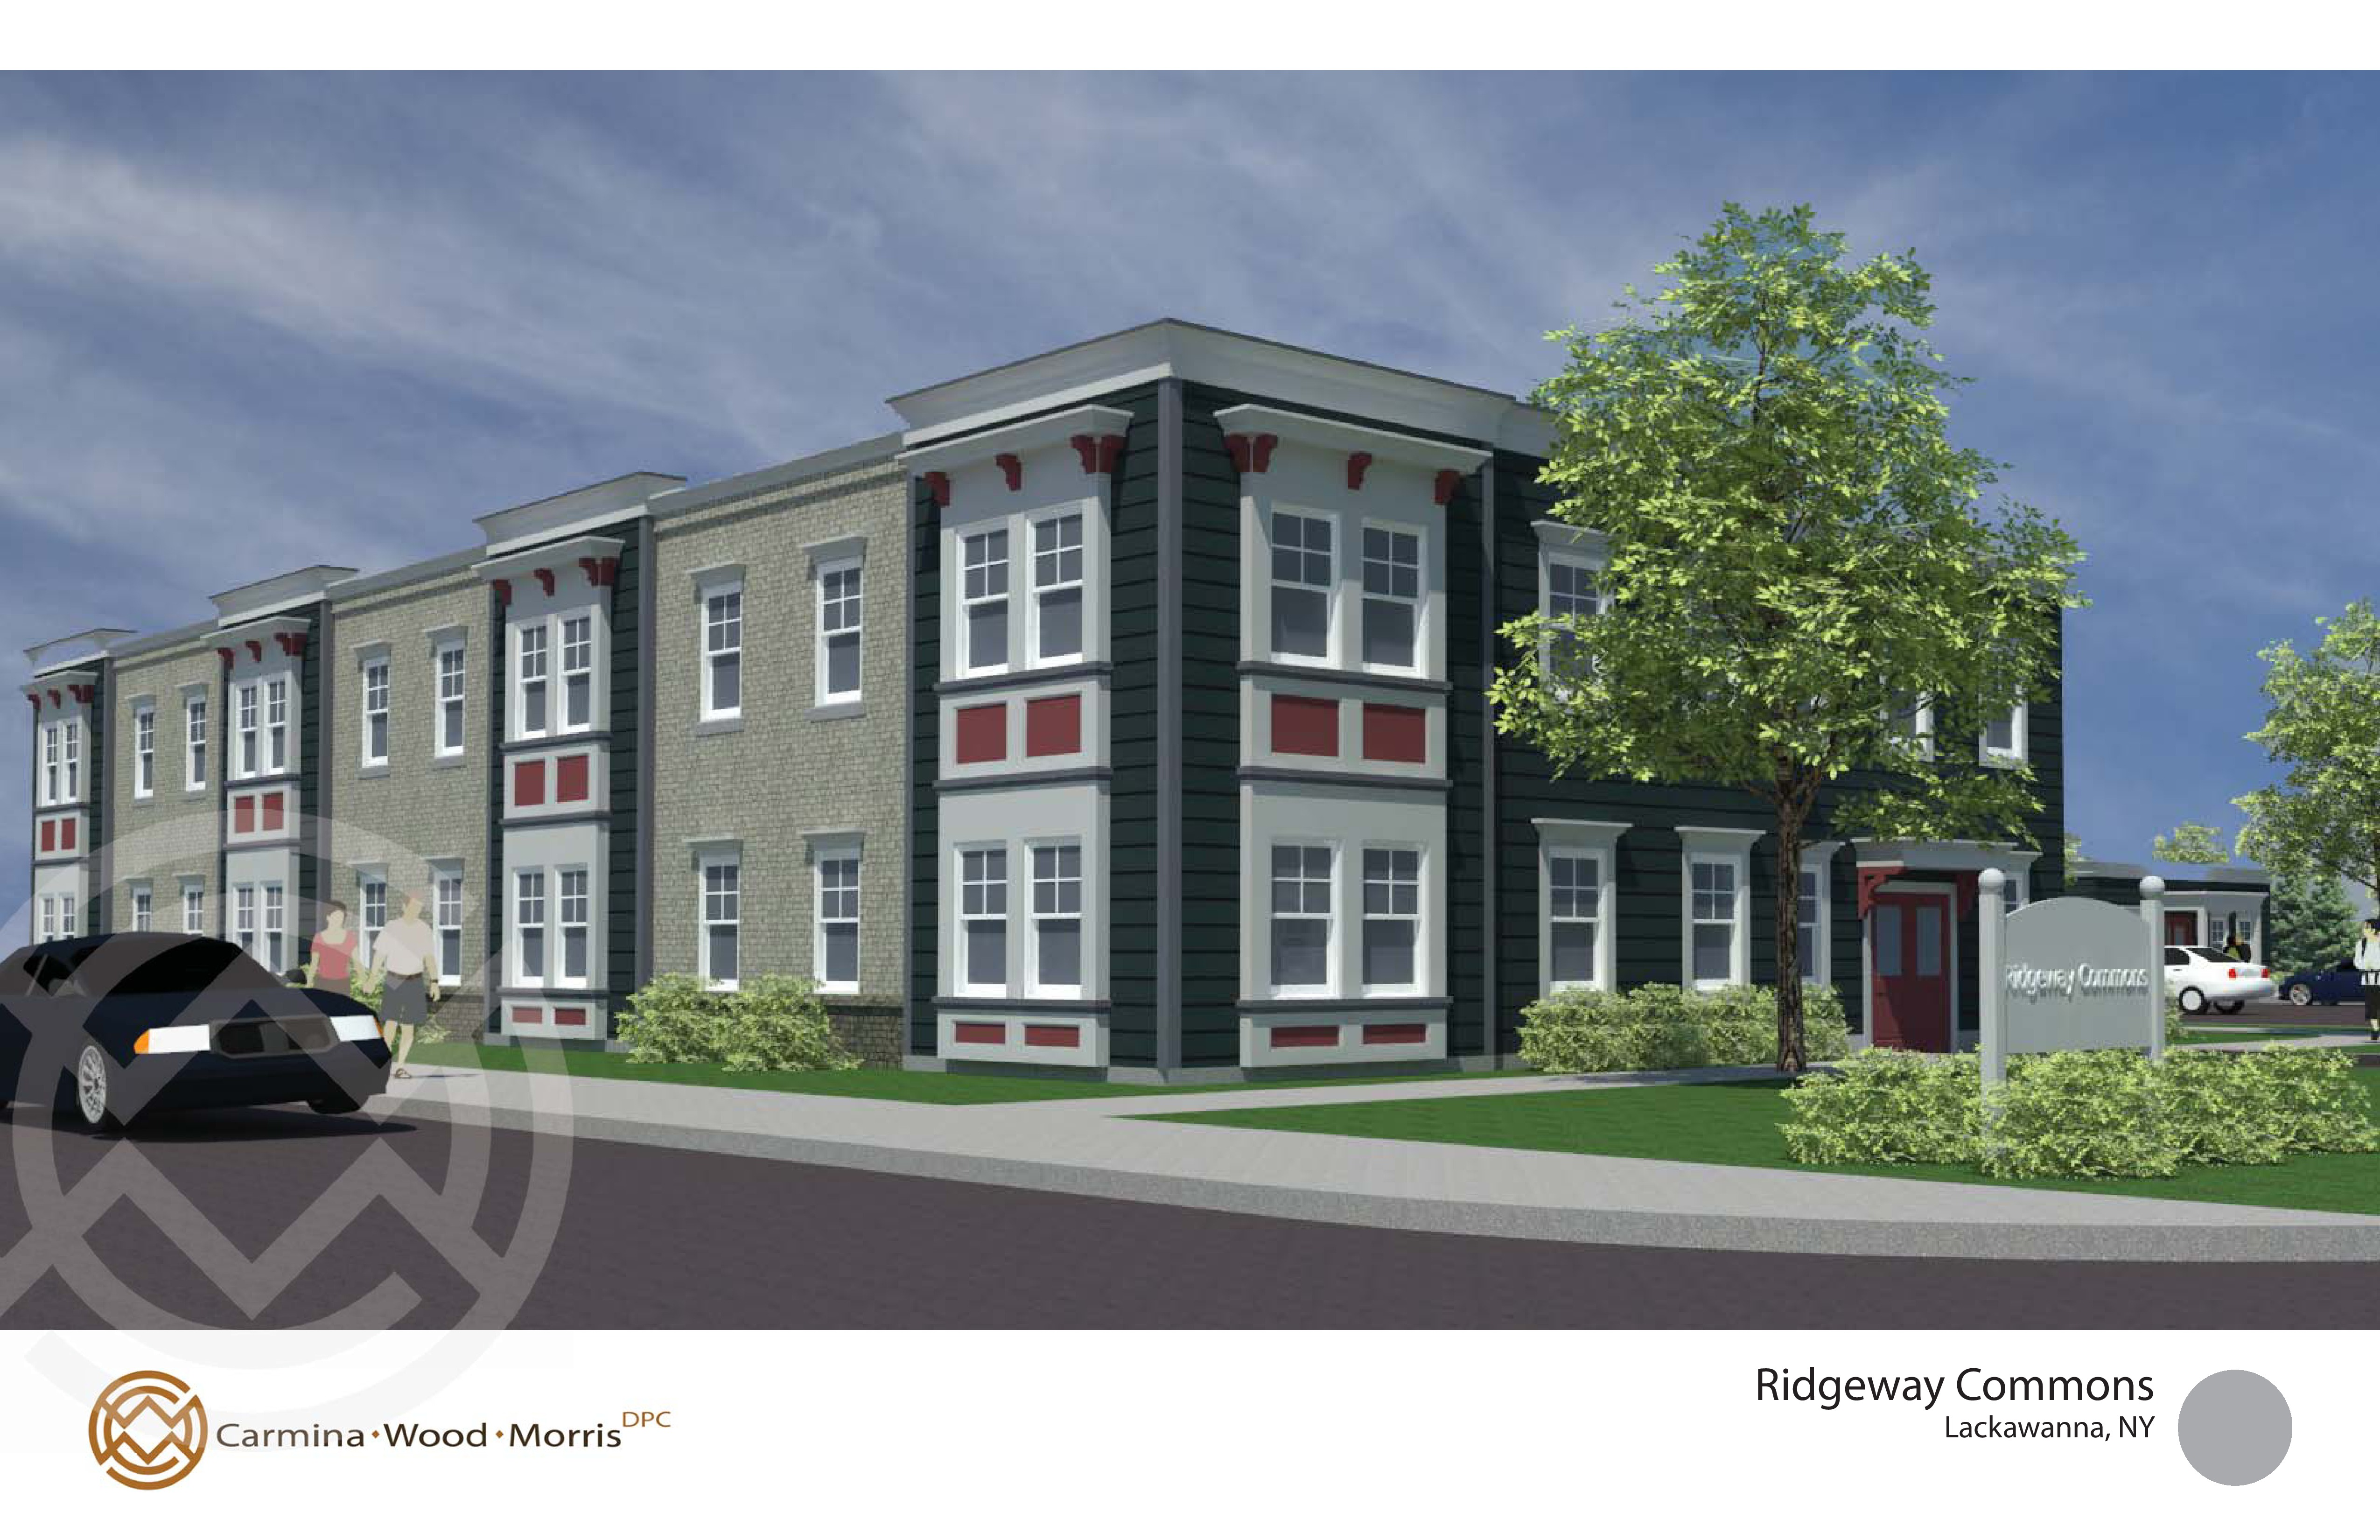 A rendering of a proposed apartment complex for low-income residents that Community Services for the Developmentally Disabled wants to build in Lackawanna, N.Y. at the former Friendship House parcel.